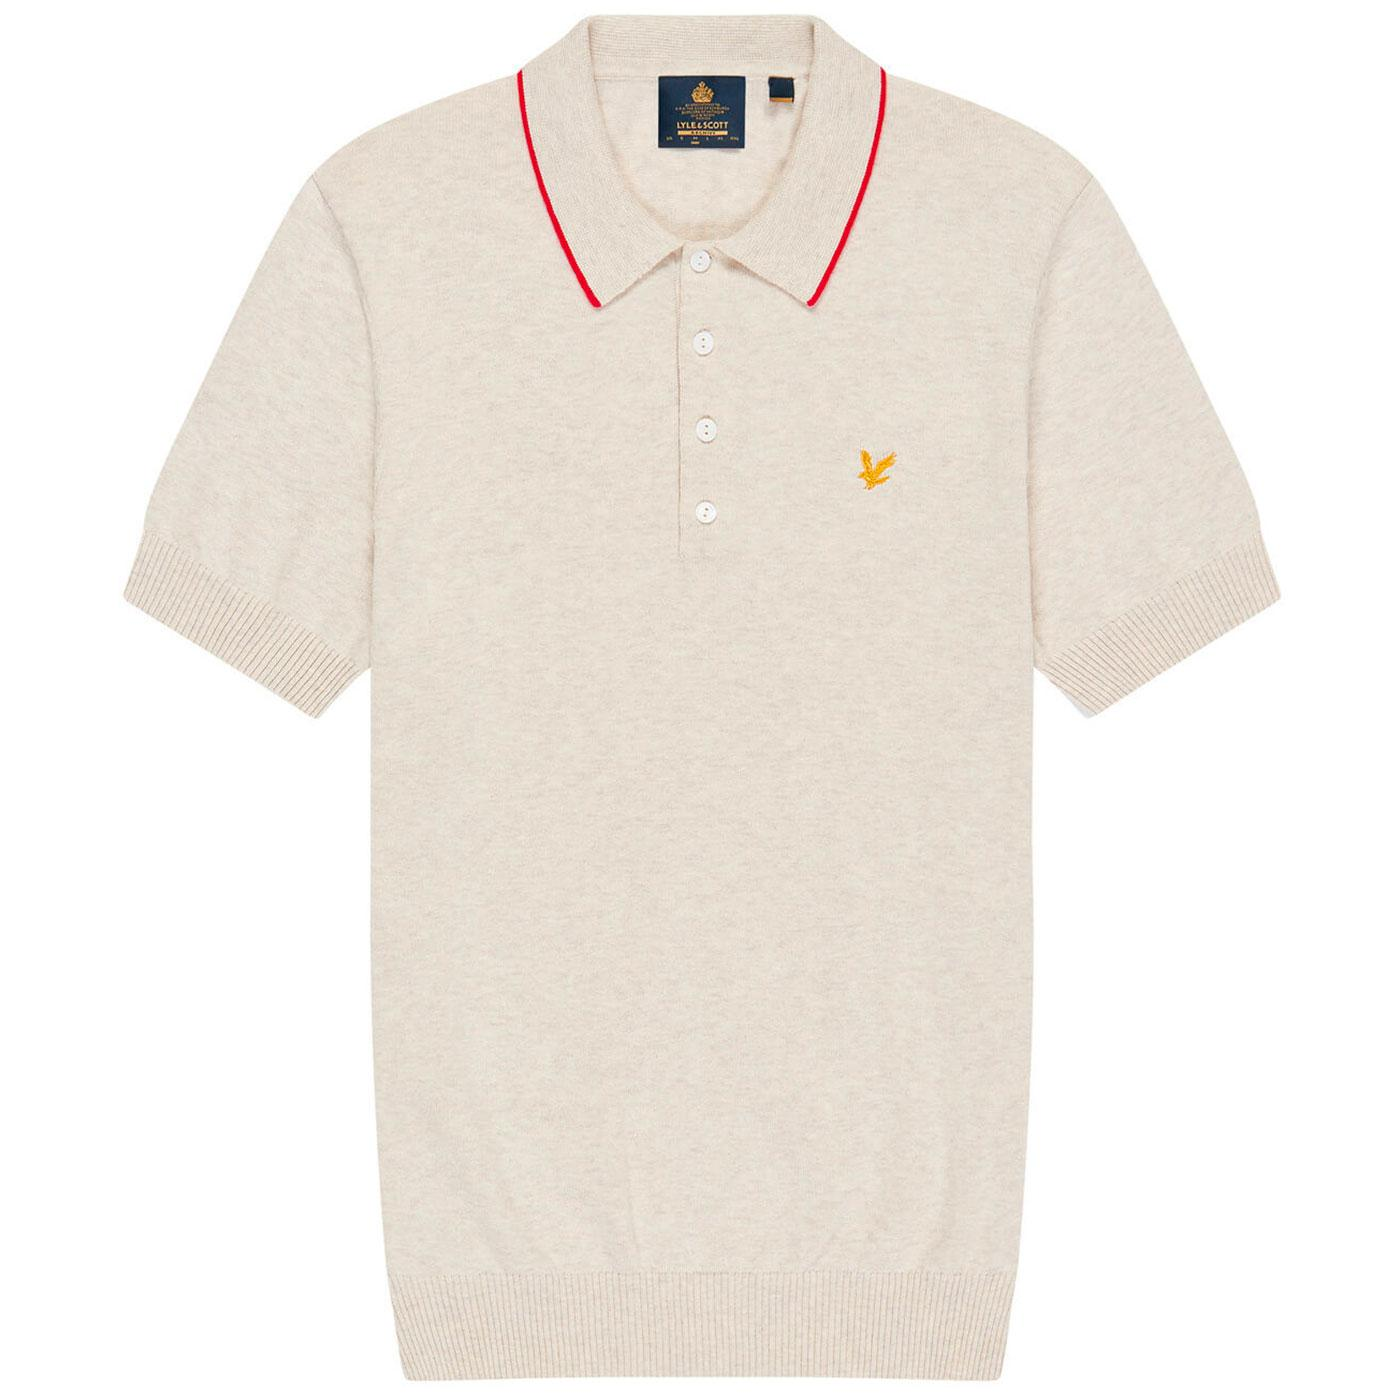 LYLE & SCOTT Archive Mod Tipped Knitted Polo (VI)